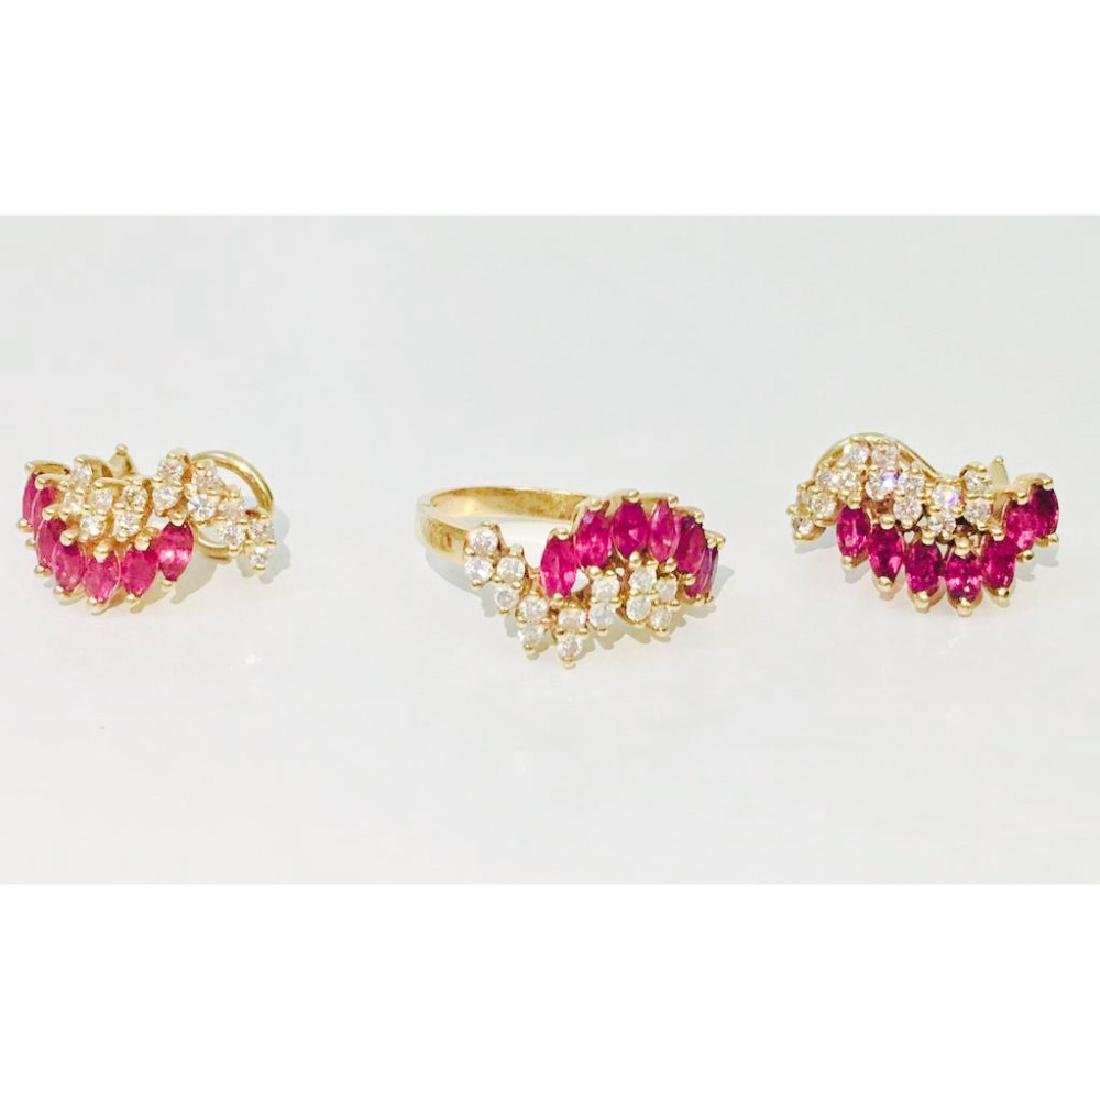 14K gold. 2.4 ct Ruby and Diamond Earrings & Ring set